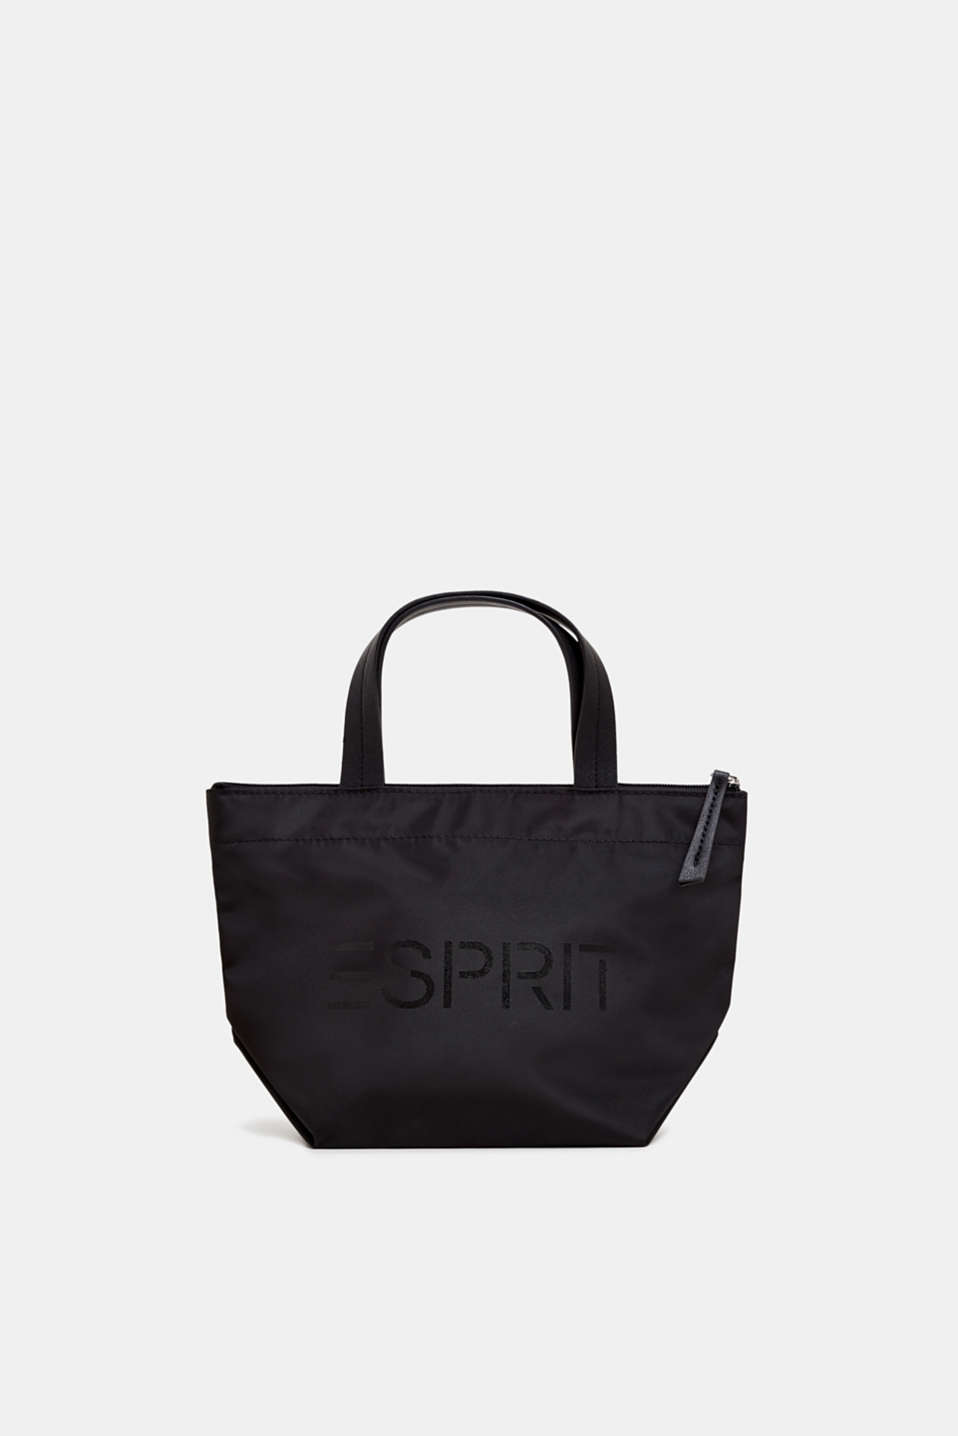 Esprit - Nylon handbag with a logo print